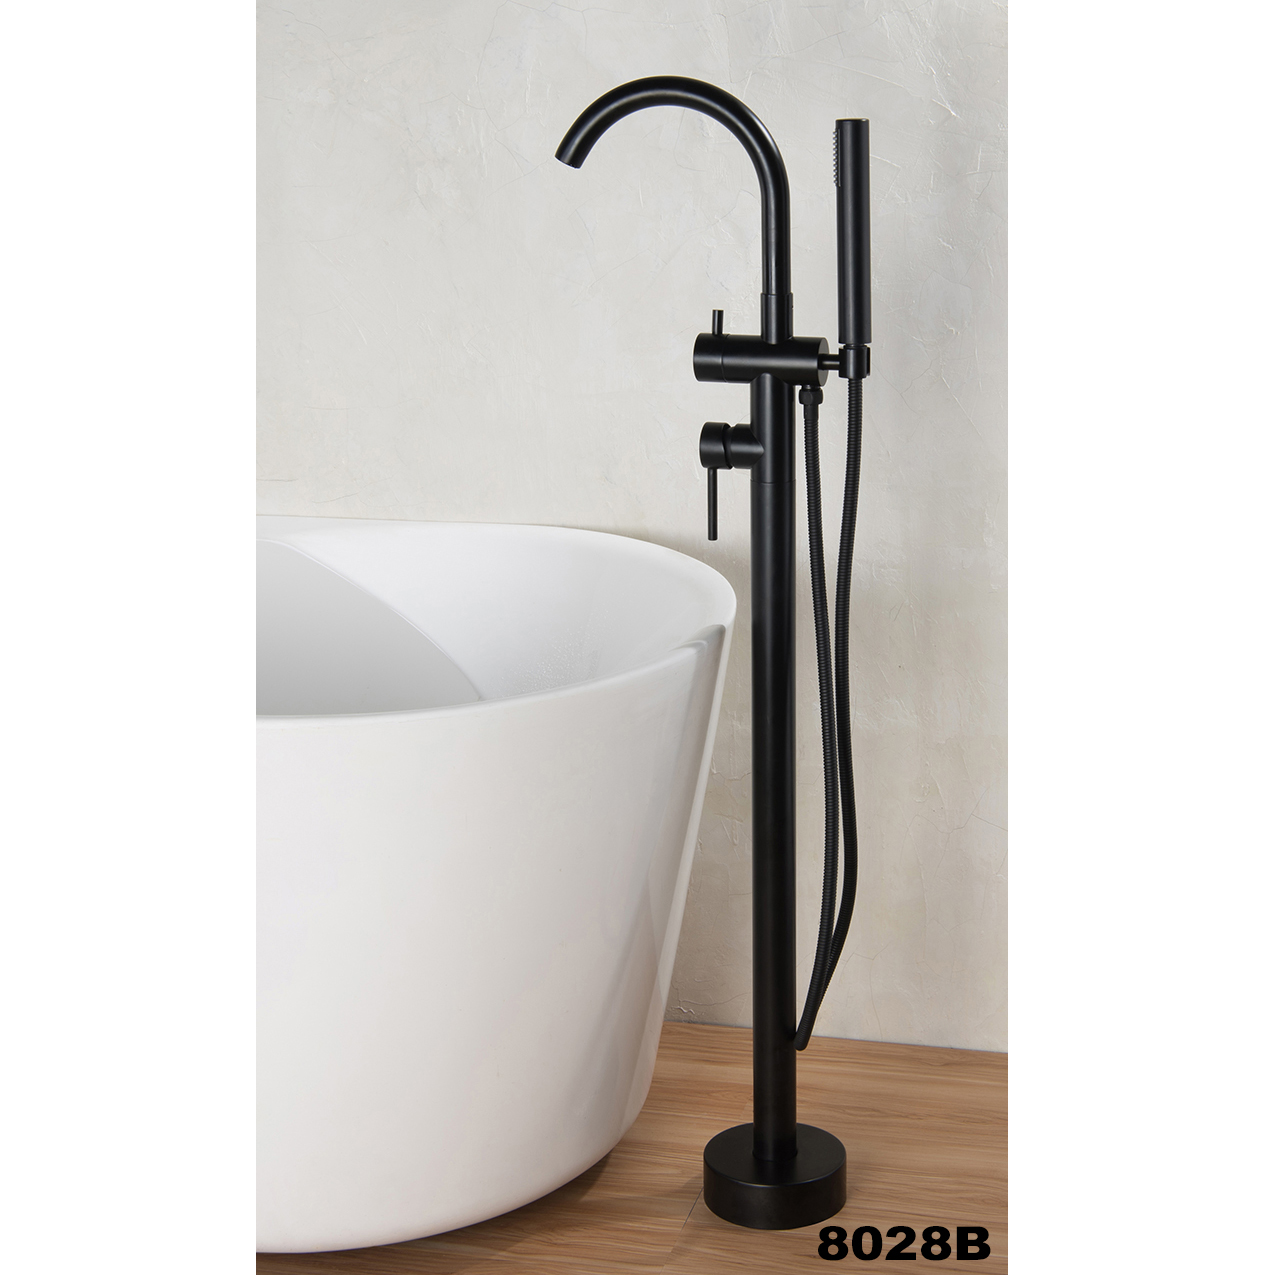 Freestanding shower mixer 8028B